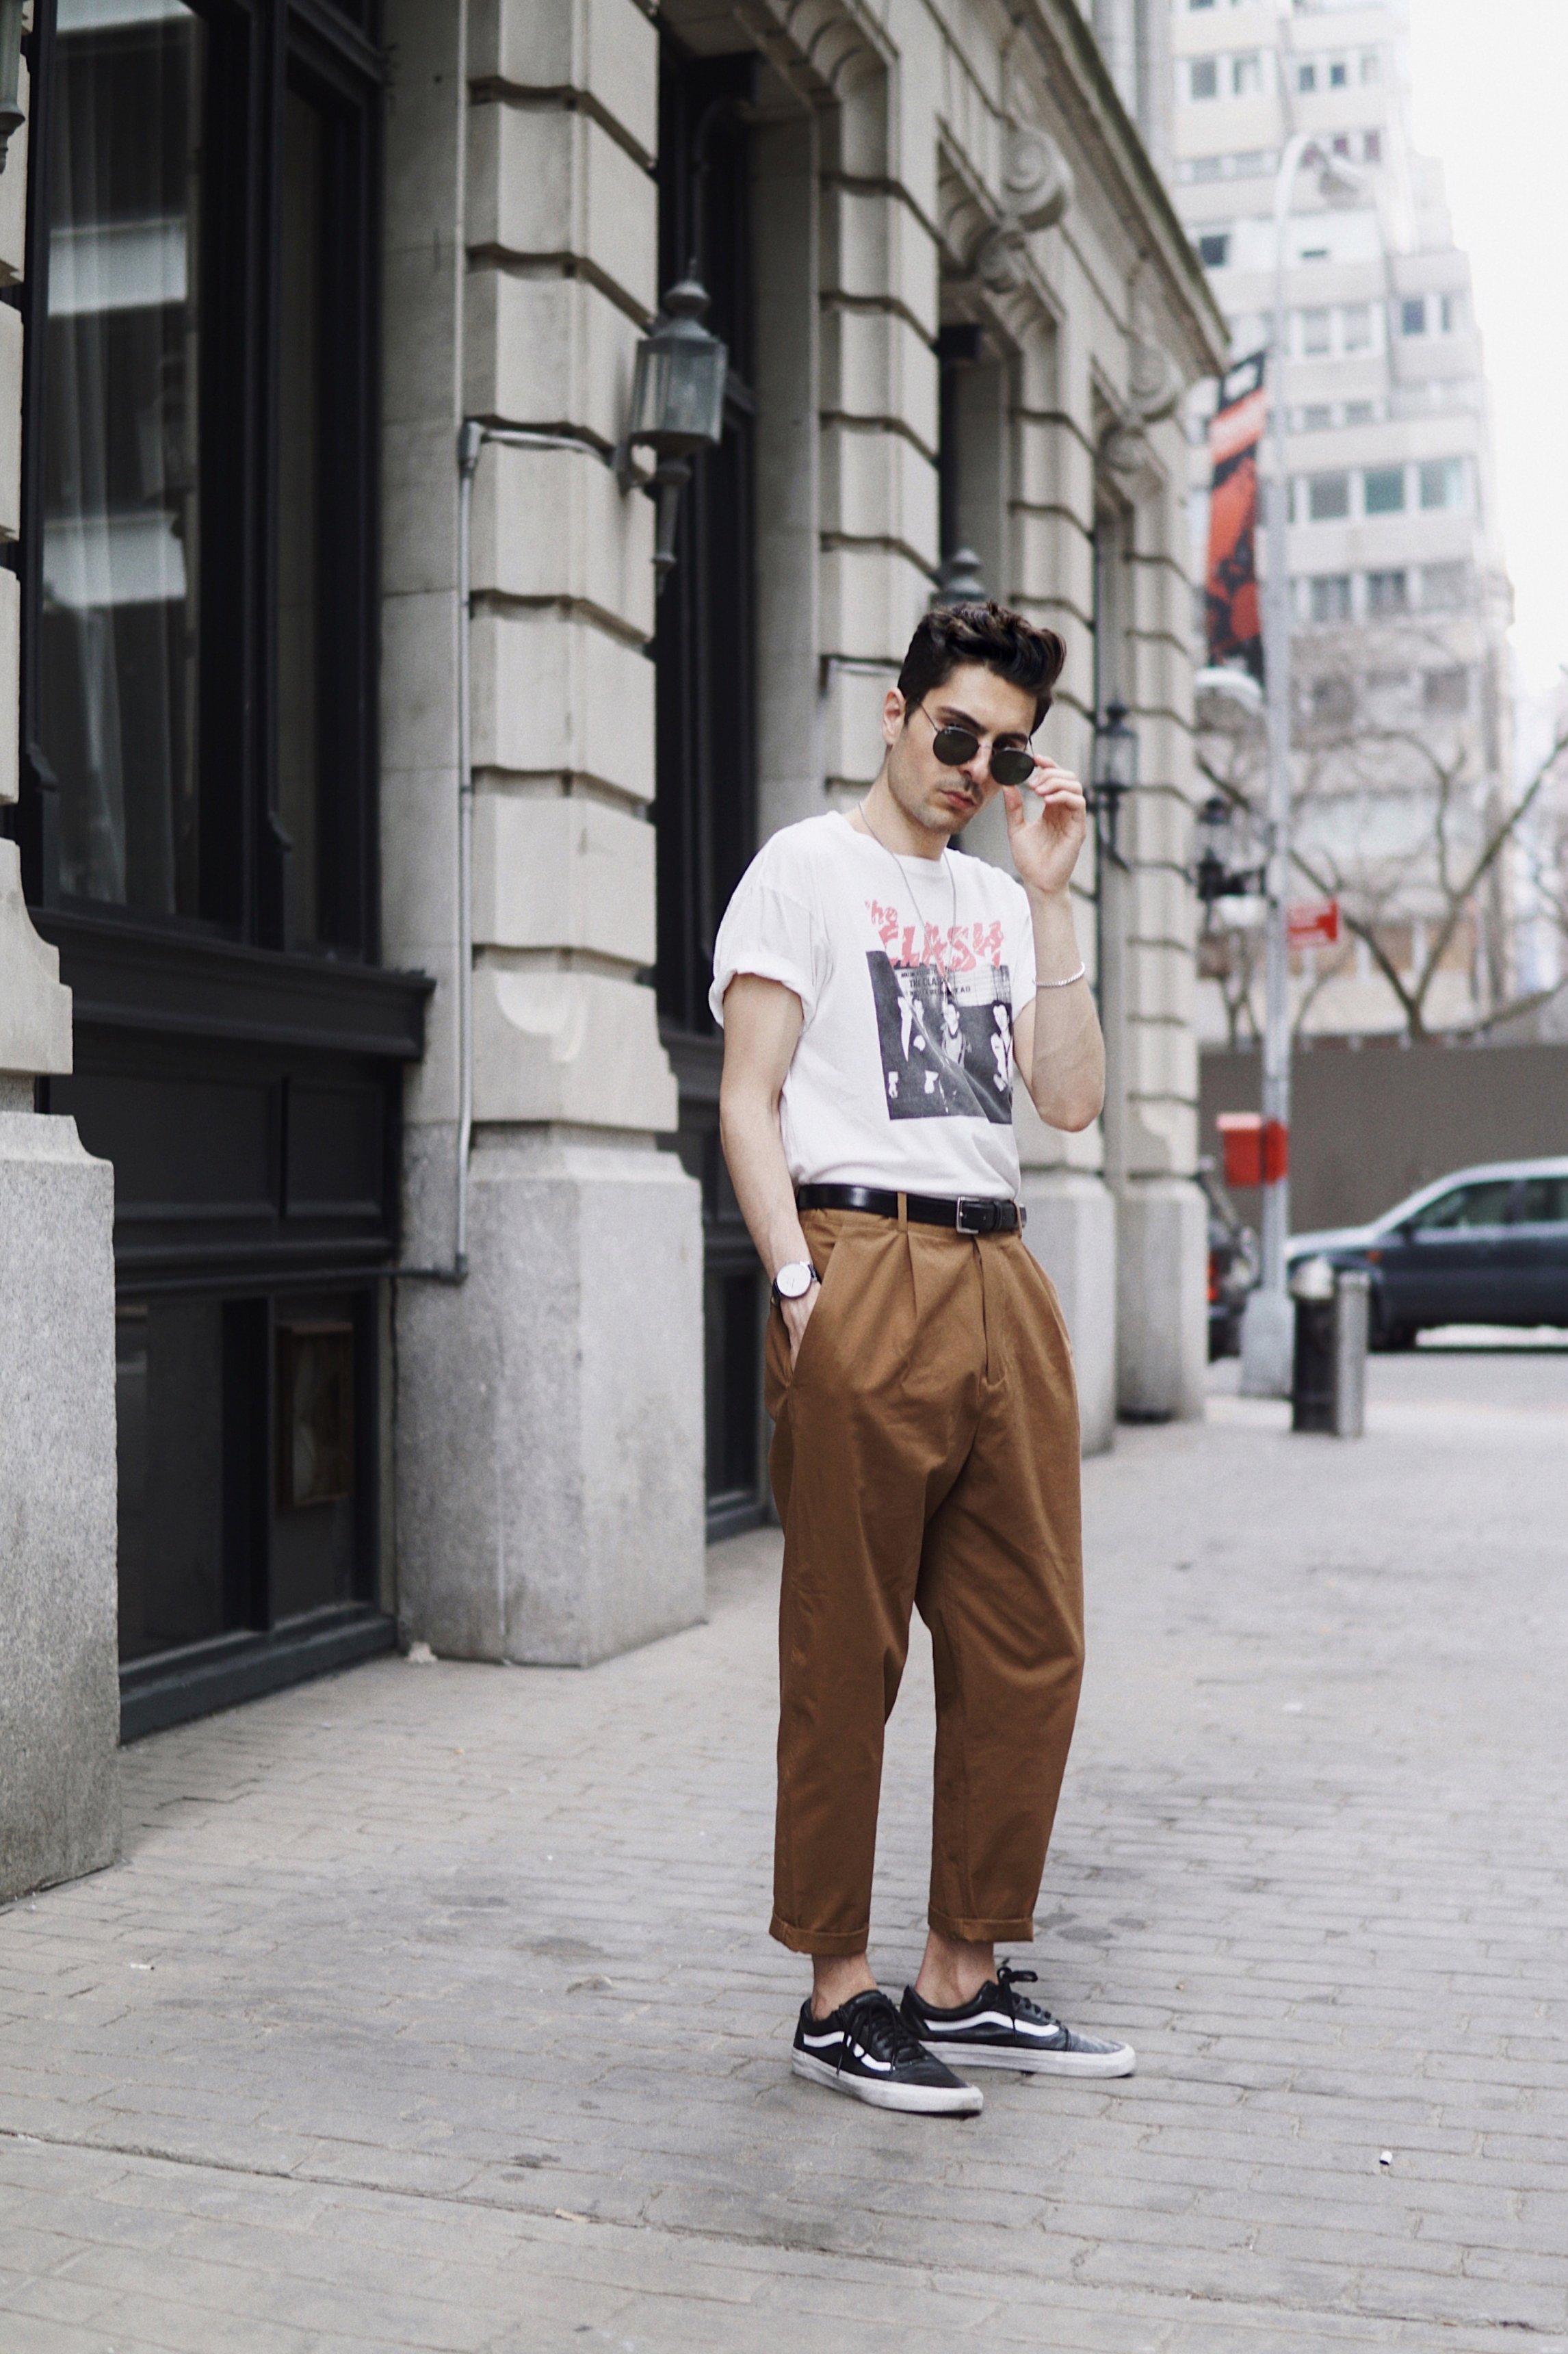 PICTURED ABOVE:                                                                                                                  1. COS  TROUSERS . 2. VANS  SNEAKERS   . 3. DANIEL WELLINGTON   WATCH . 4. SIMILAR   BAND TEE .